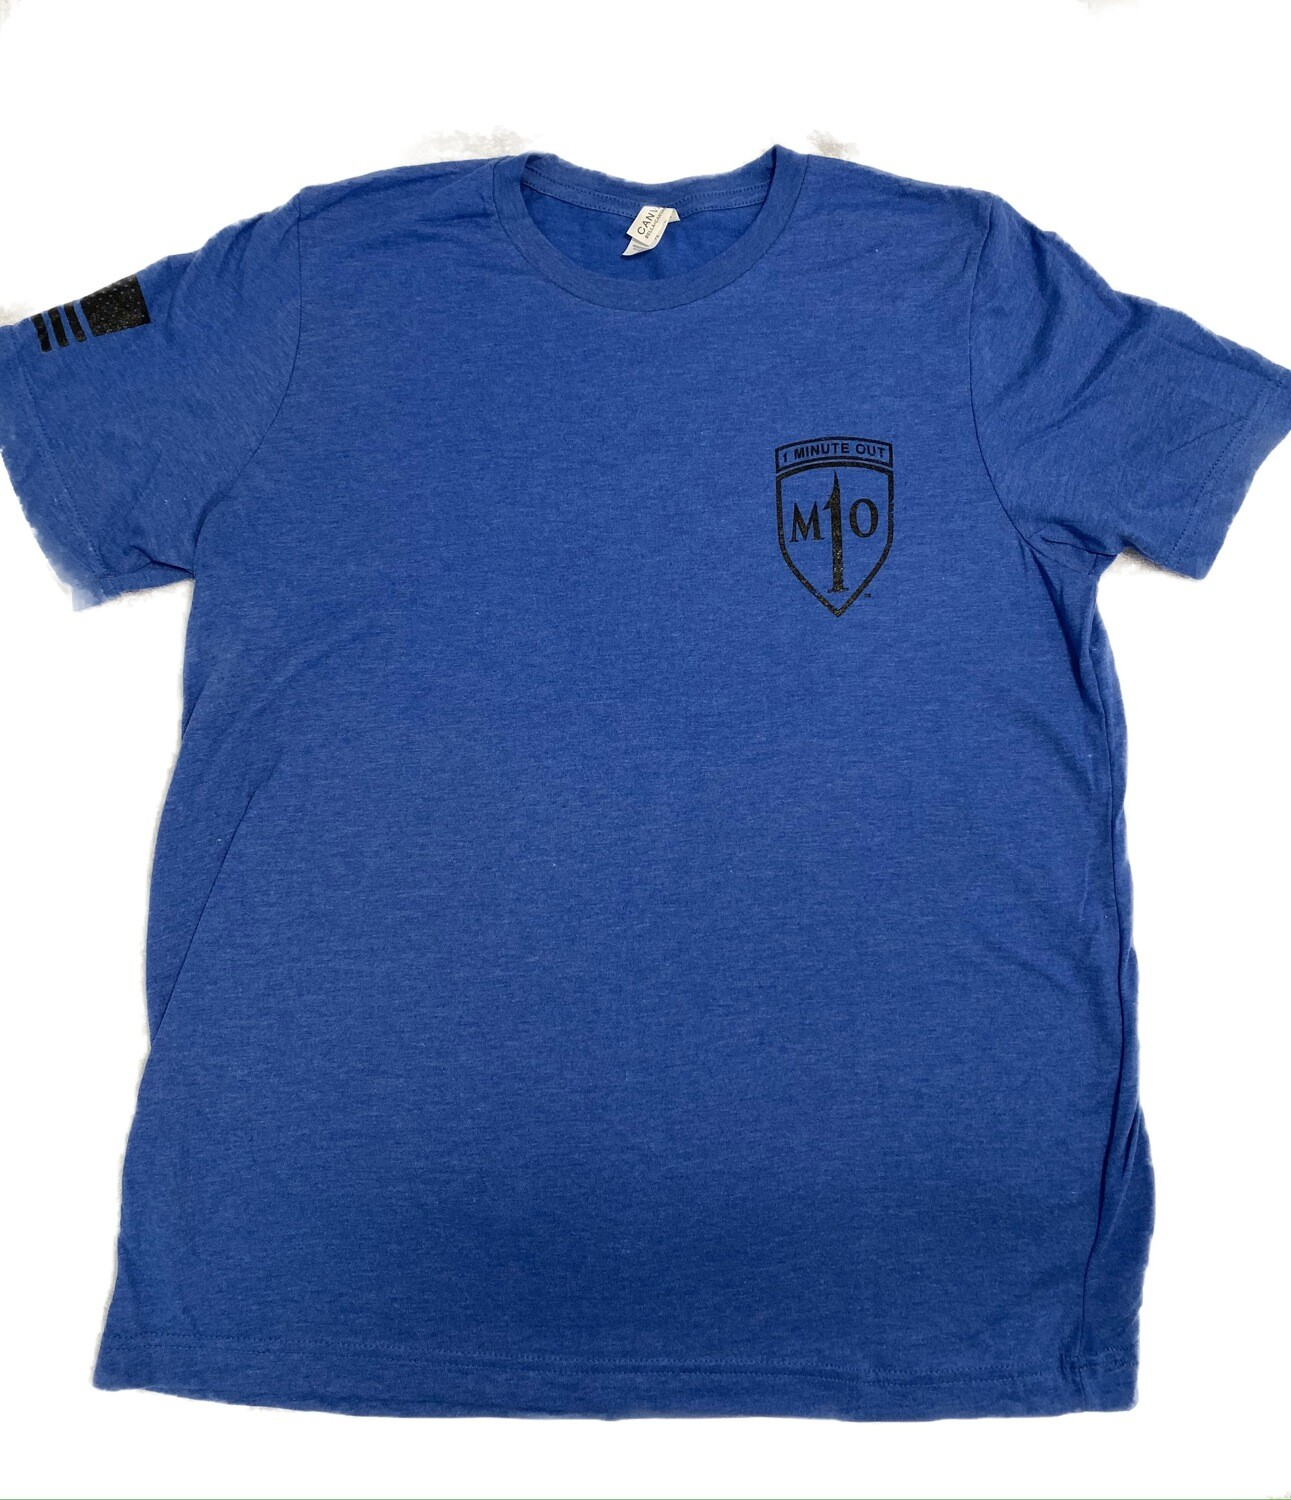 1 Minute Out Royal Blue  NVG Operator Logo T-Shirt-XLARGE